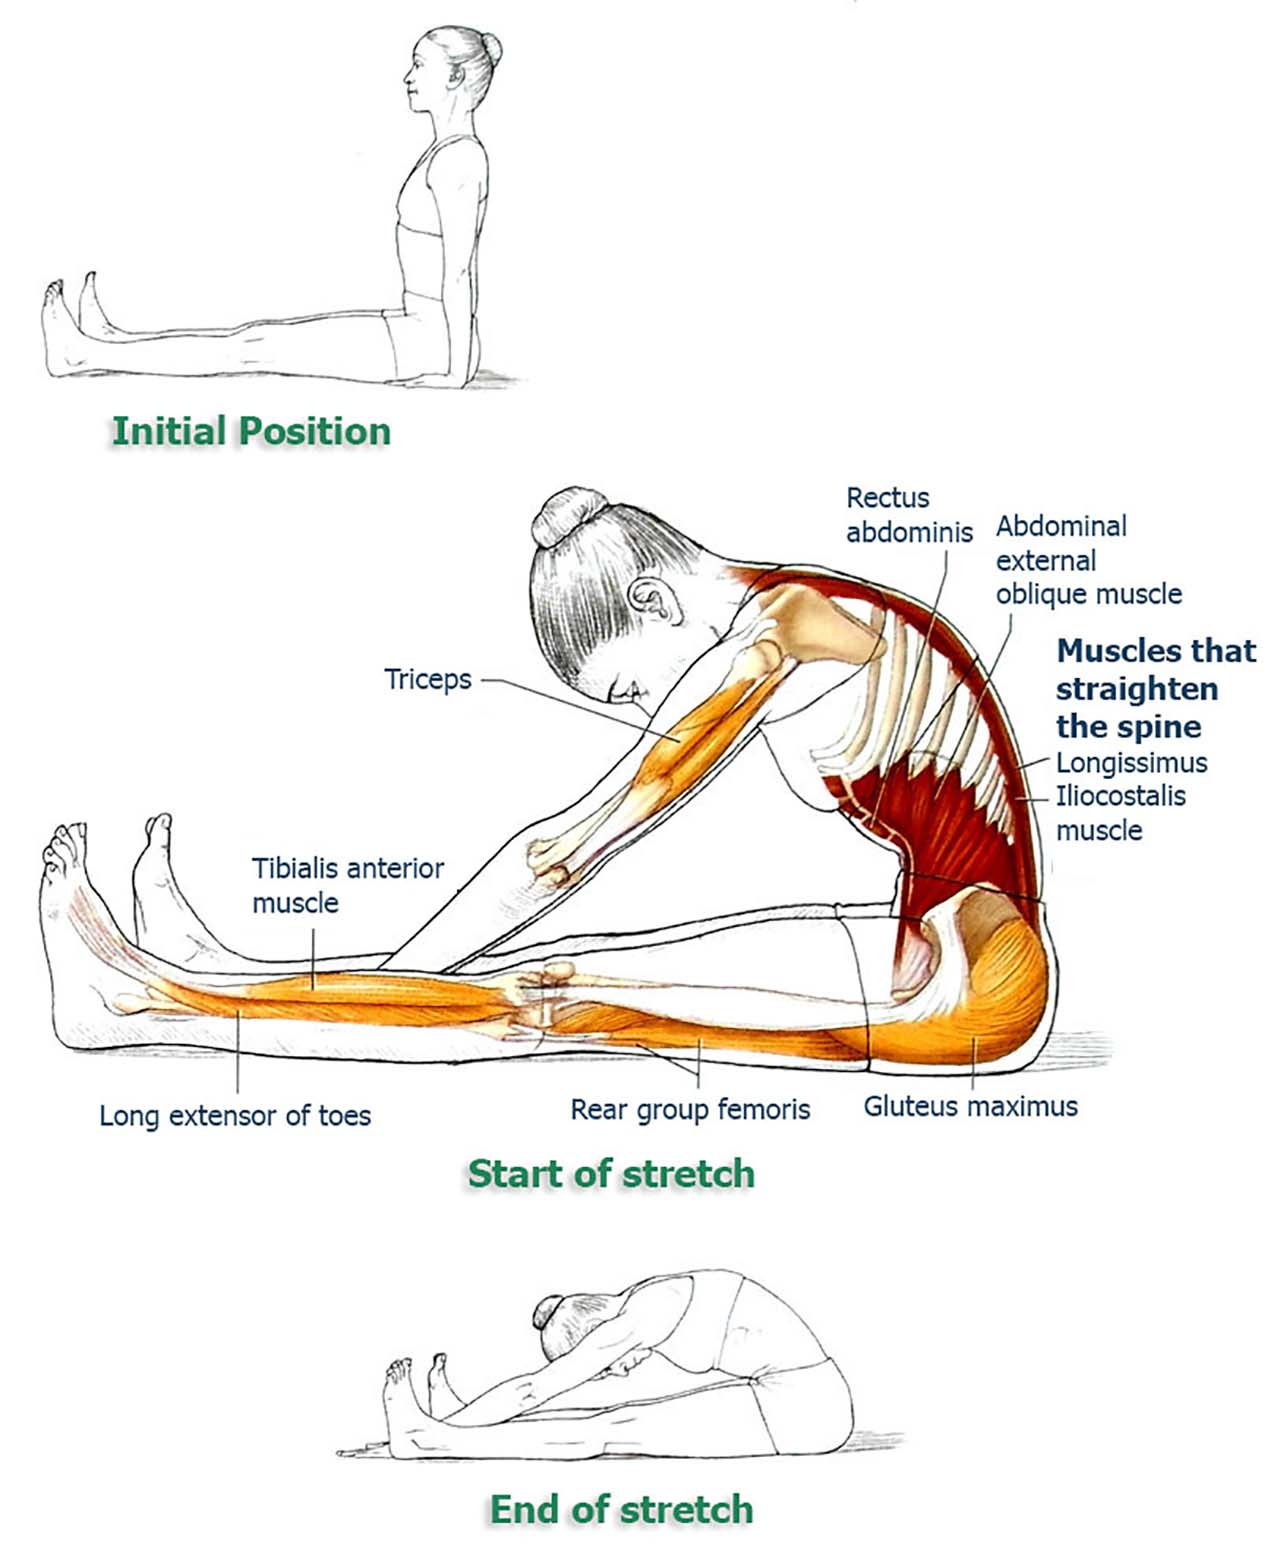 8 Exercises To Improve Your Posture And Relieve Your Back & Spine - Back Stretching: Seated toe touch is the most common back stretching method. It is easy to improve and as you improve, you can lower your upper body more towards your toes. Once you get used to touching your toes, you can try reaching out beyond your feet and stretch more.